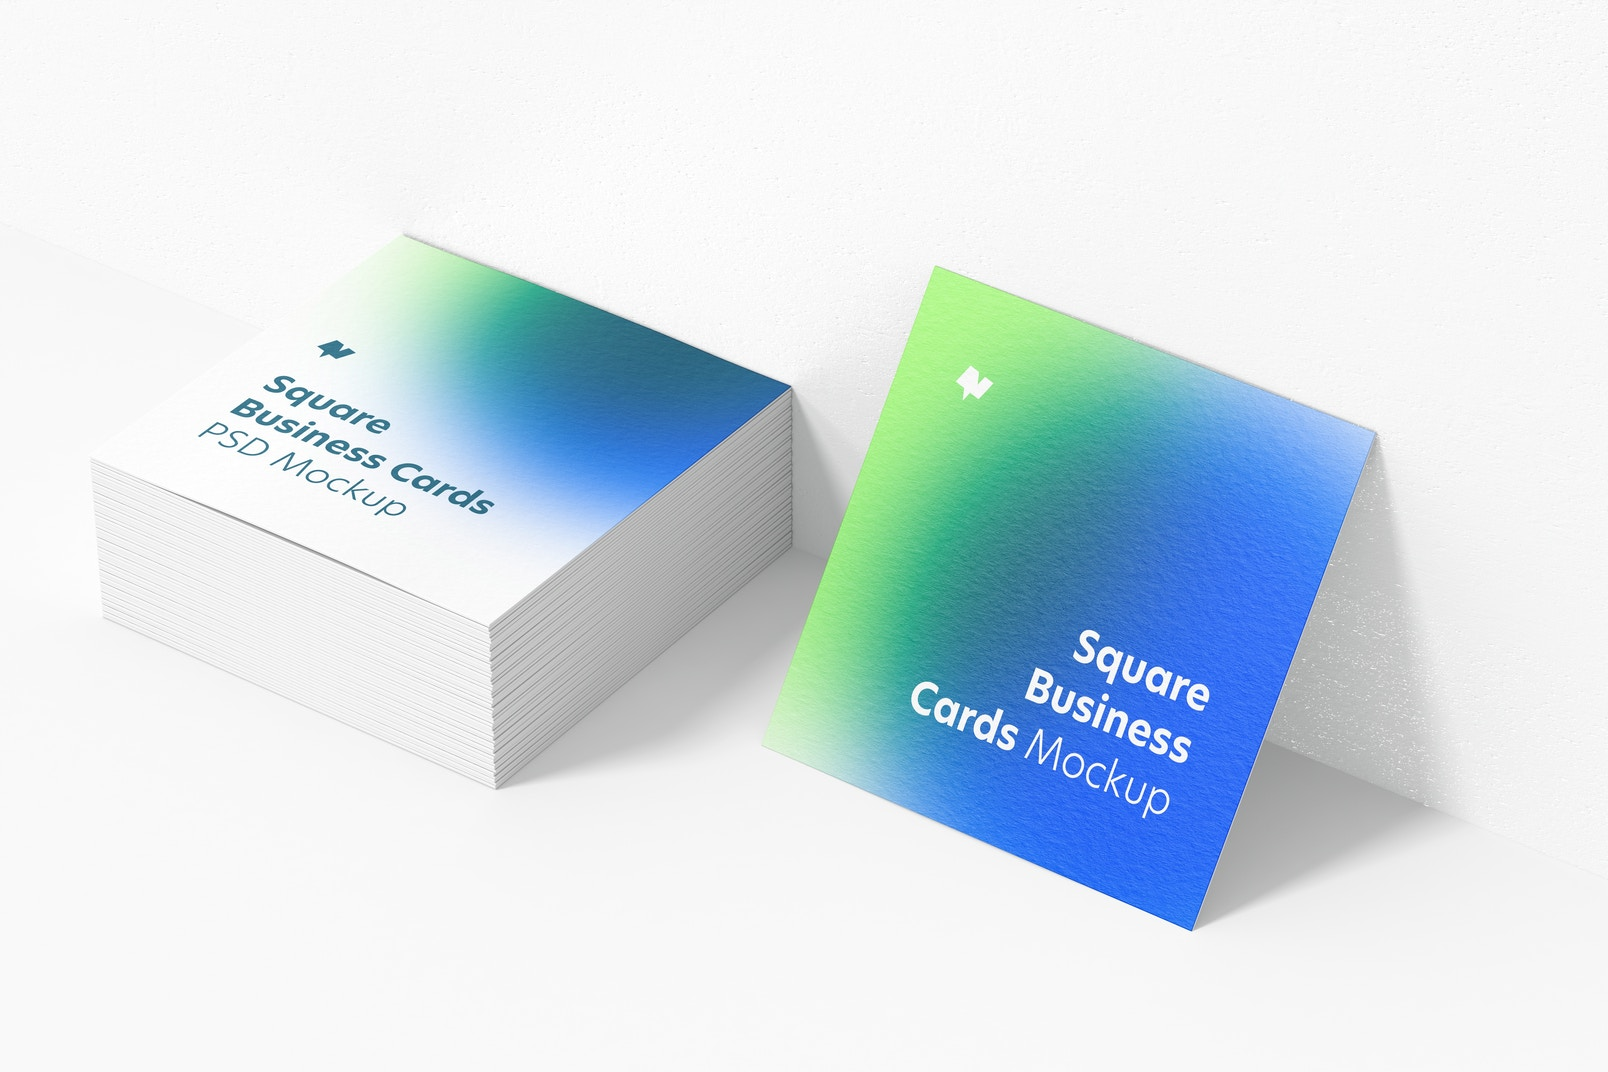 Square Business Cards Mockup, Stacked Set